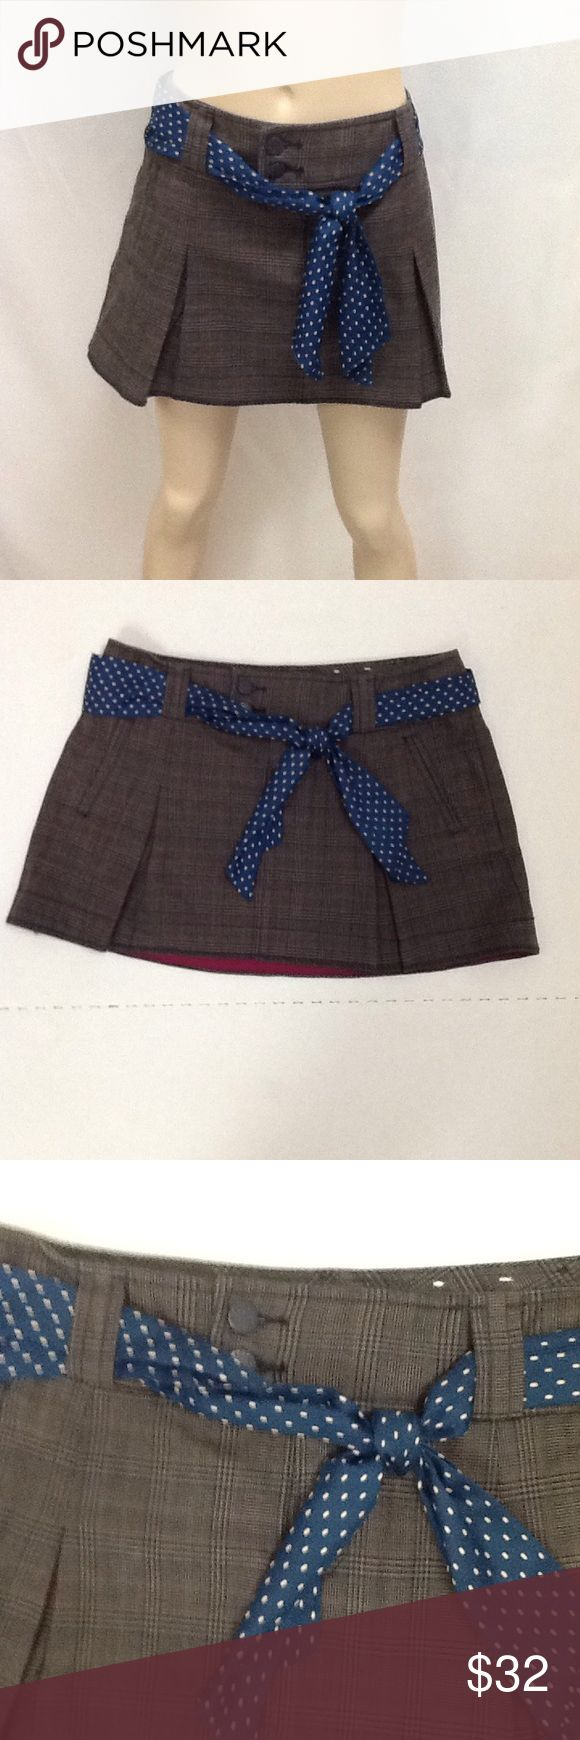 Size 6 Schoolgirl Skirt American Eagle Plaid Front and back pockets, pleats and sash adorn this plaid schoolgirl skirt  by American Eagle Outfitters. Button and zipper front. 100% cotton. American Eagle Outfitters Skirts Mini